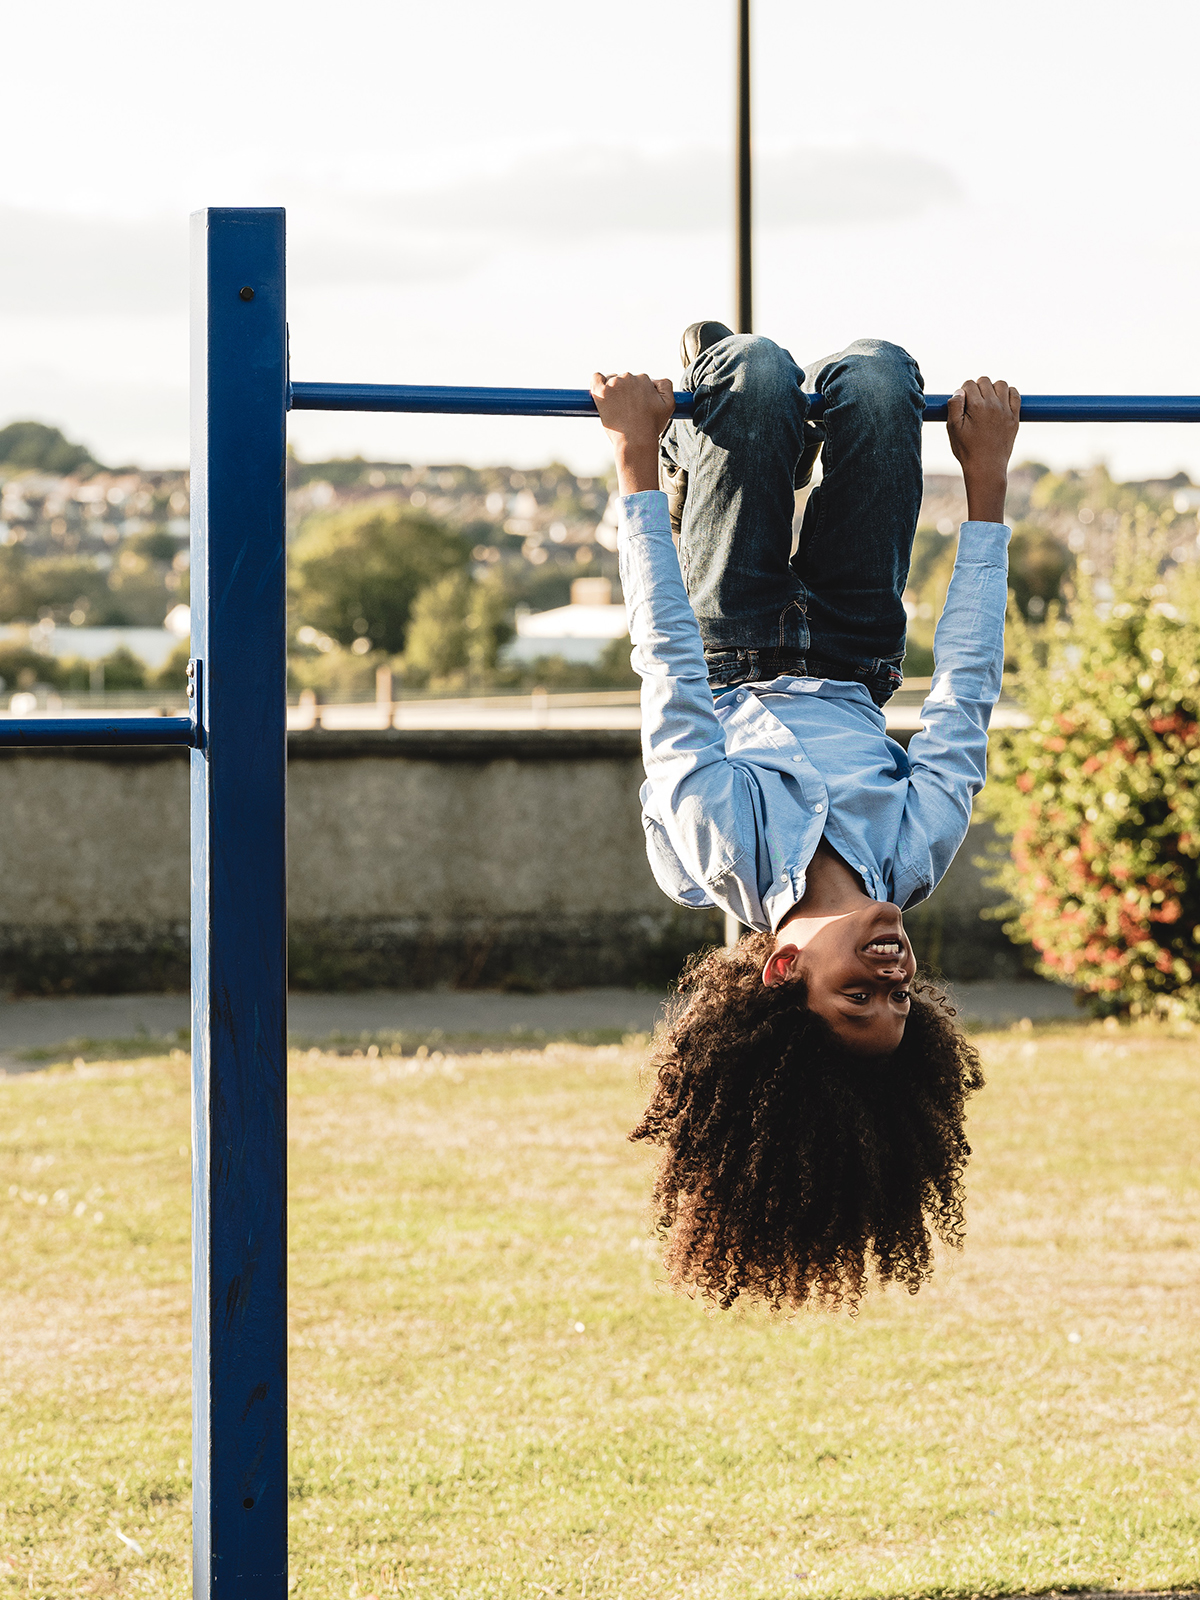 A child swings from monkey bars during a photoshoot